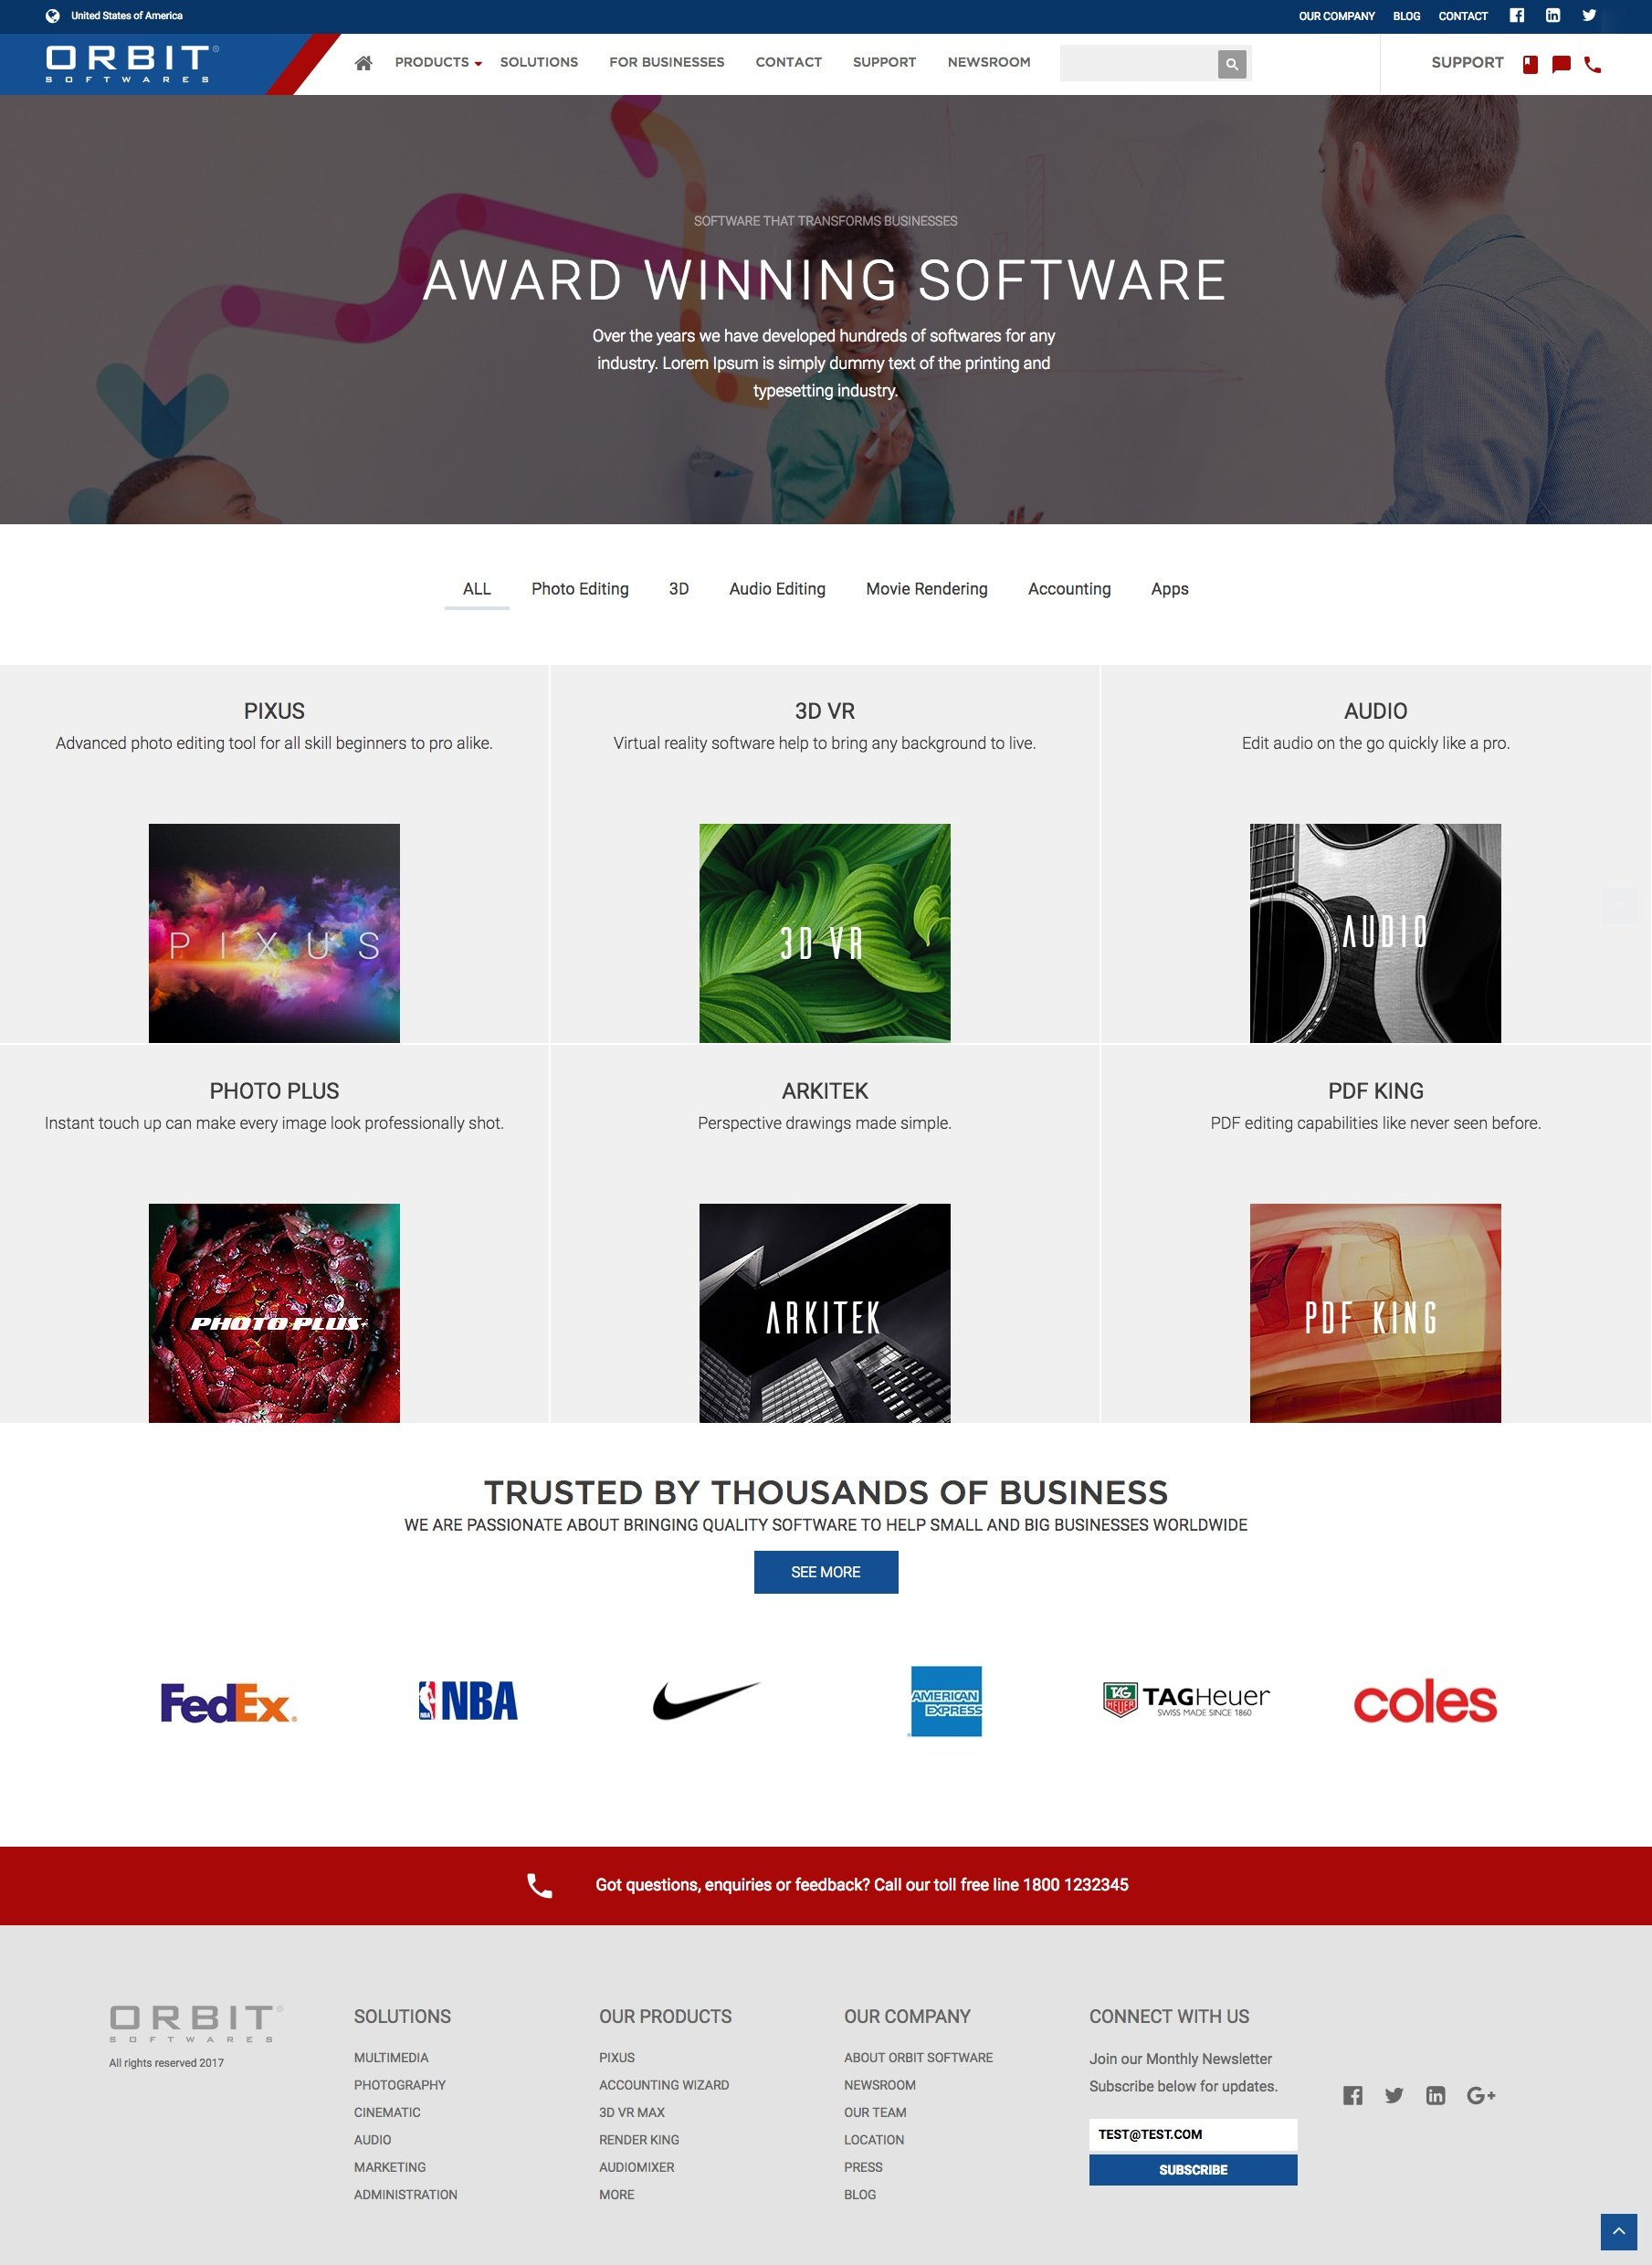 Orbit SaaS Product Listing Page HubSpot template